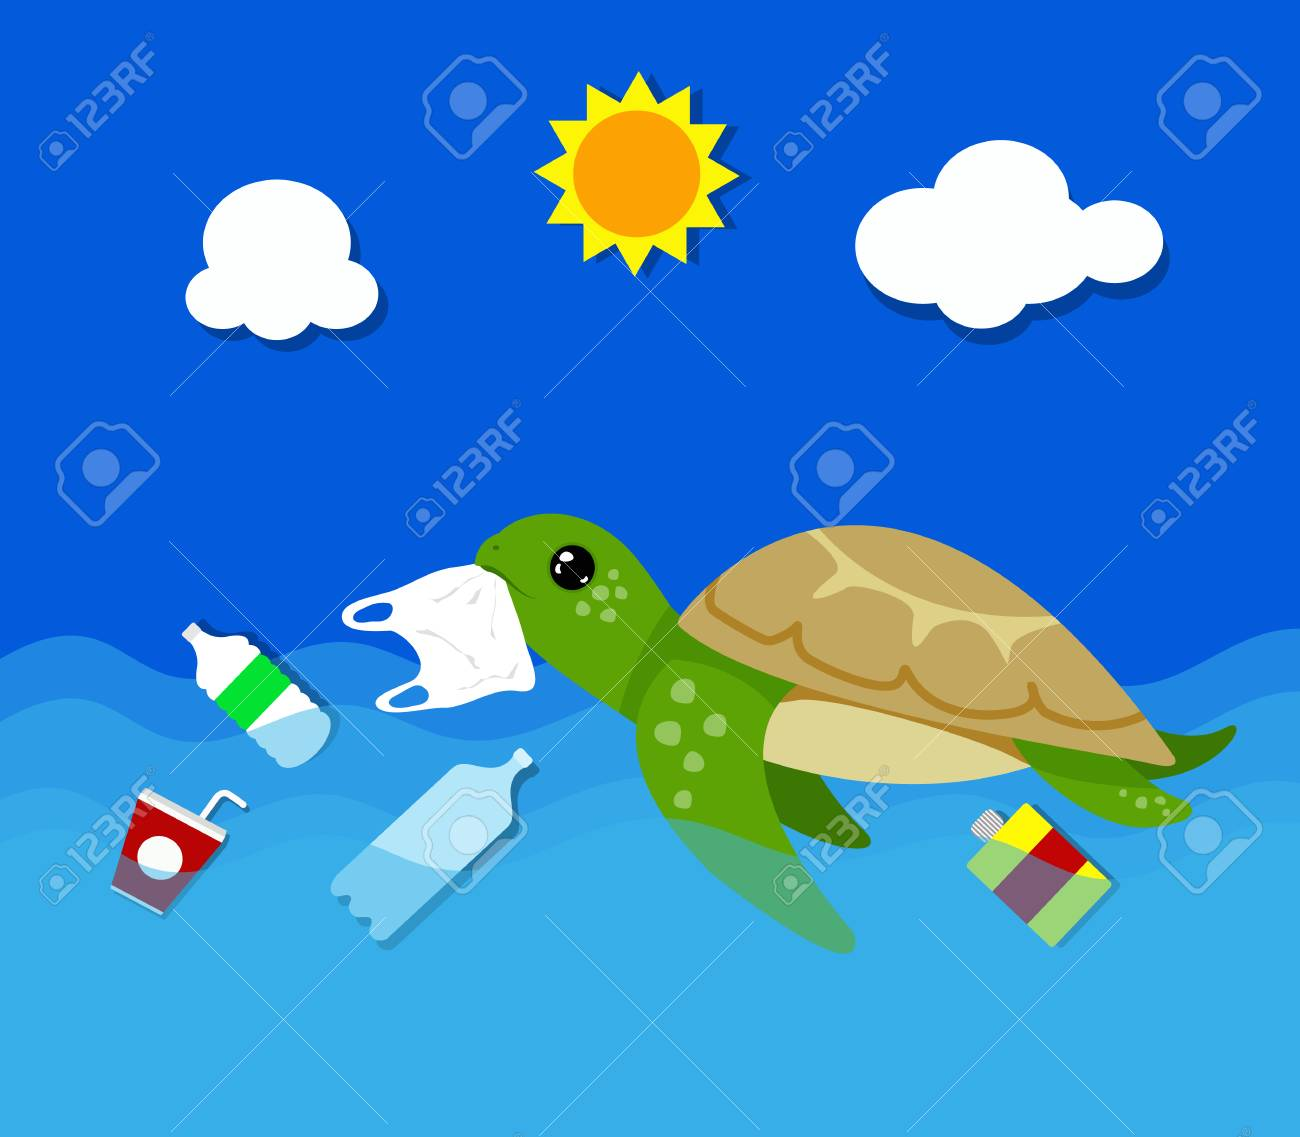 Plastic pollution in ocean environmental problem. Turtles can eat plastic bags mistaking them for jellyfish. vector illustration. - 106448671